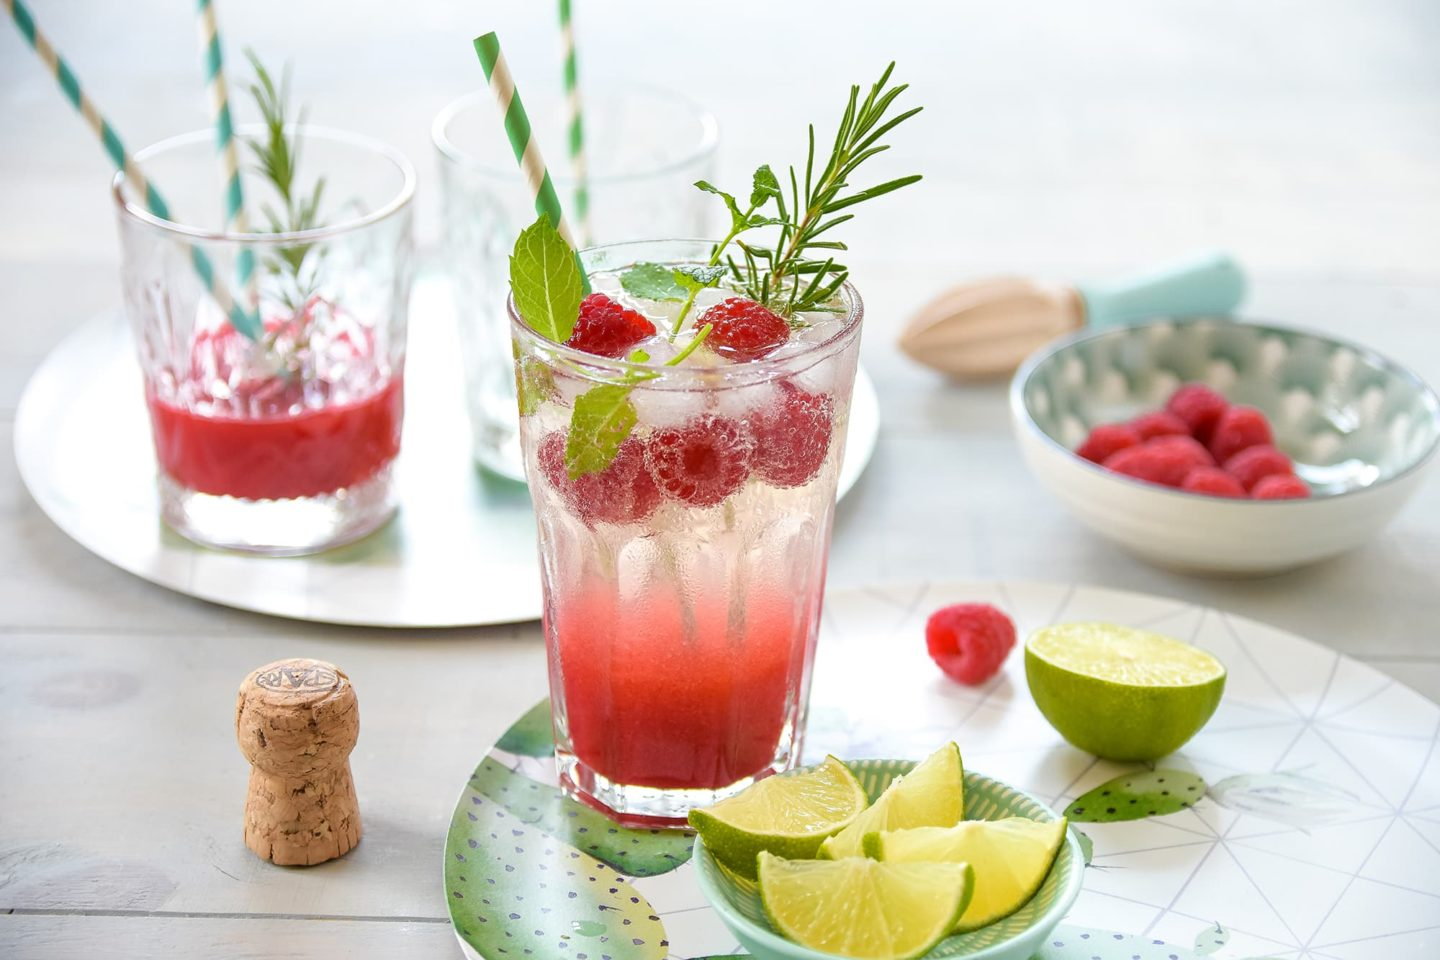 Himbeer-Gin-Prosecco